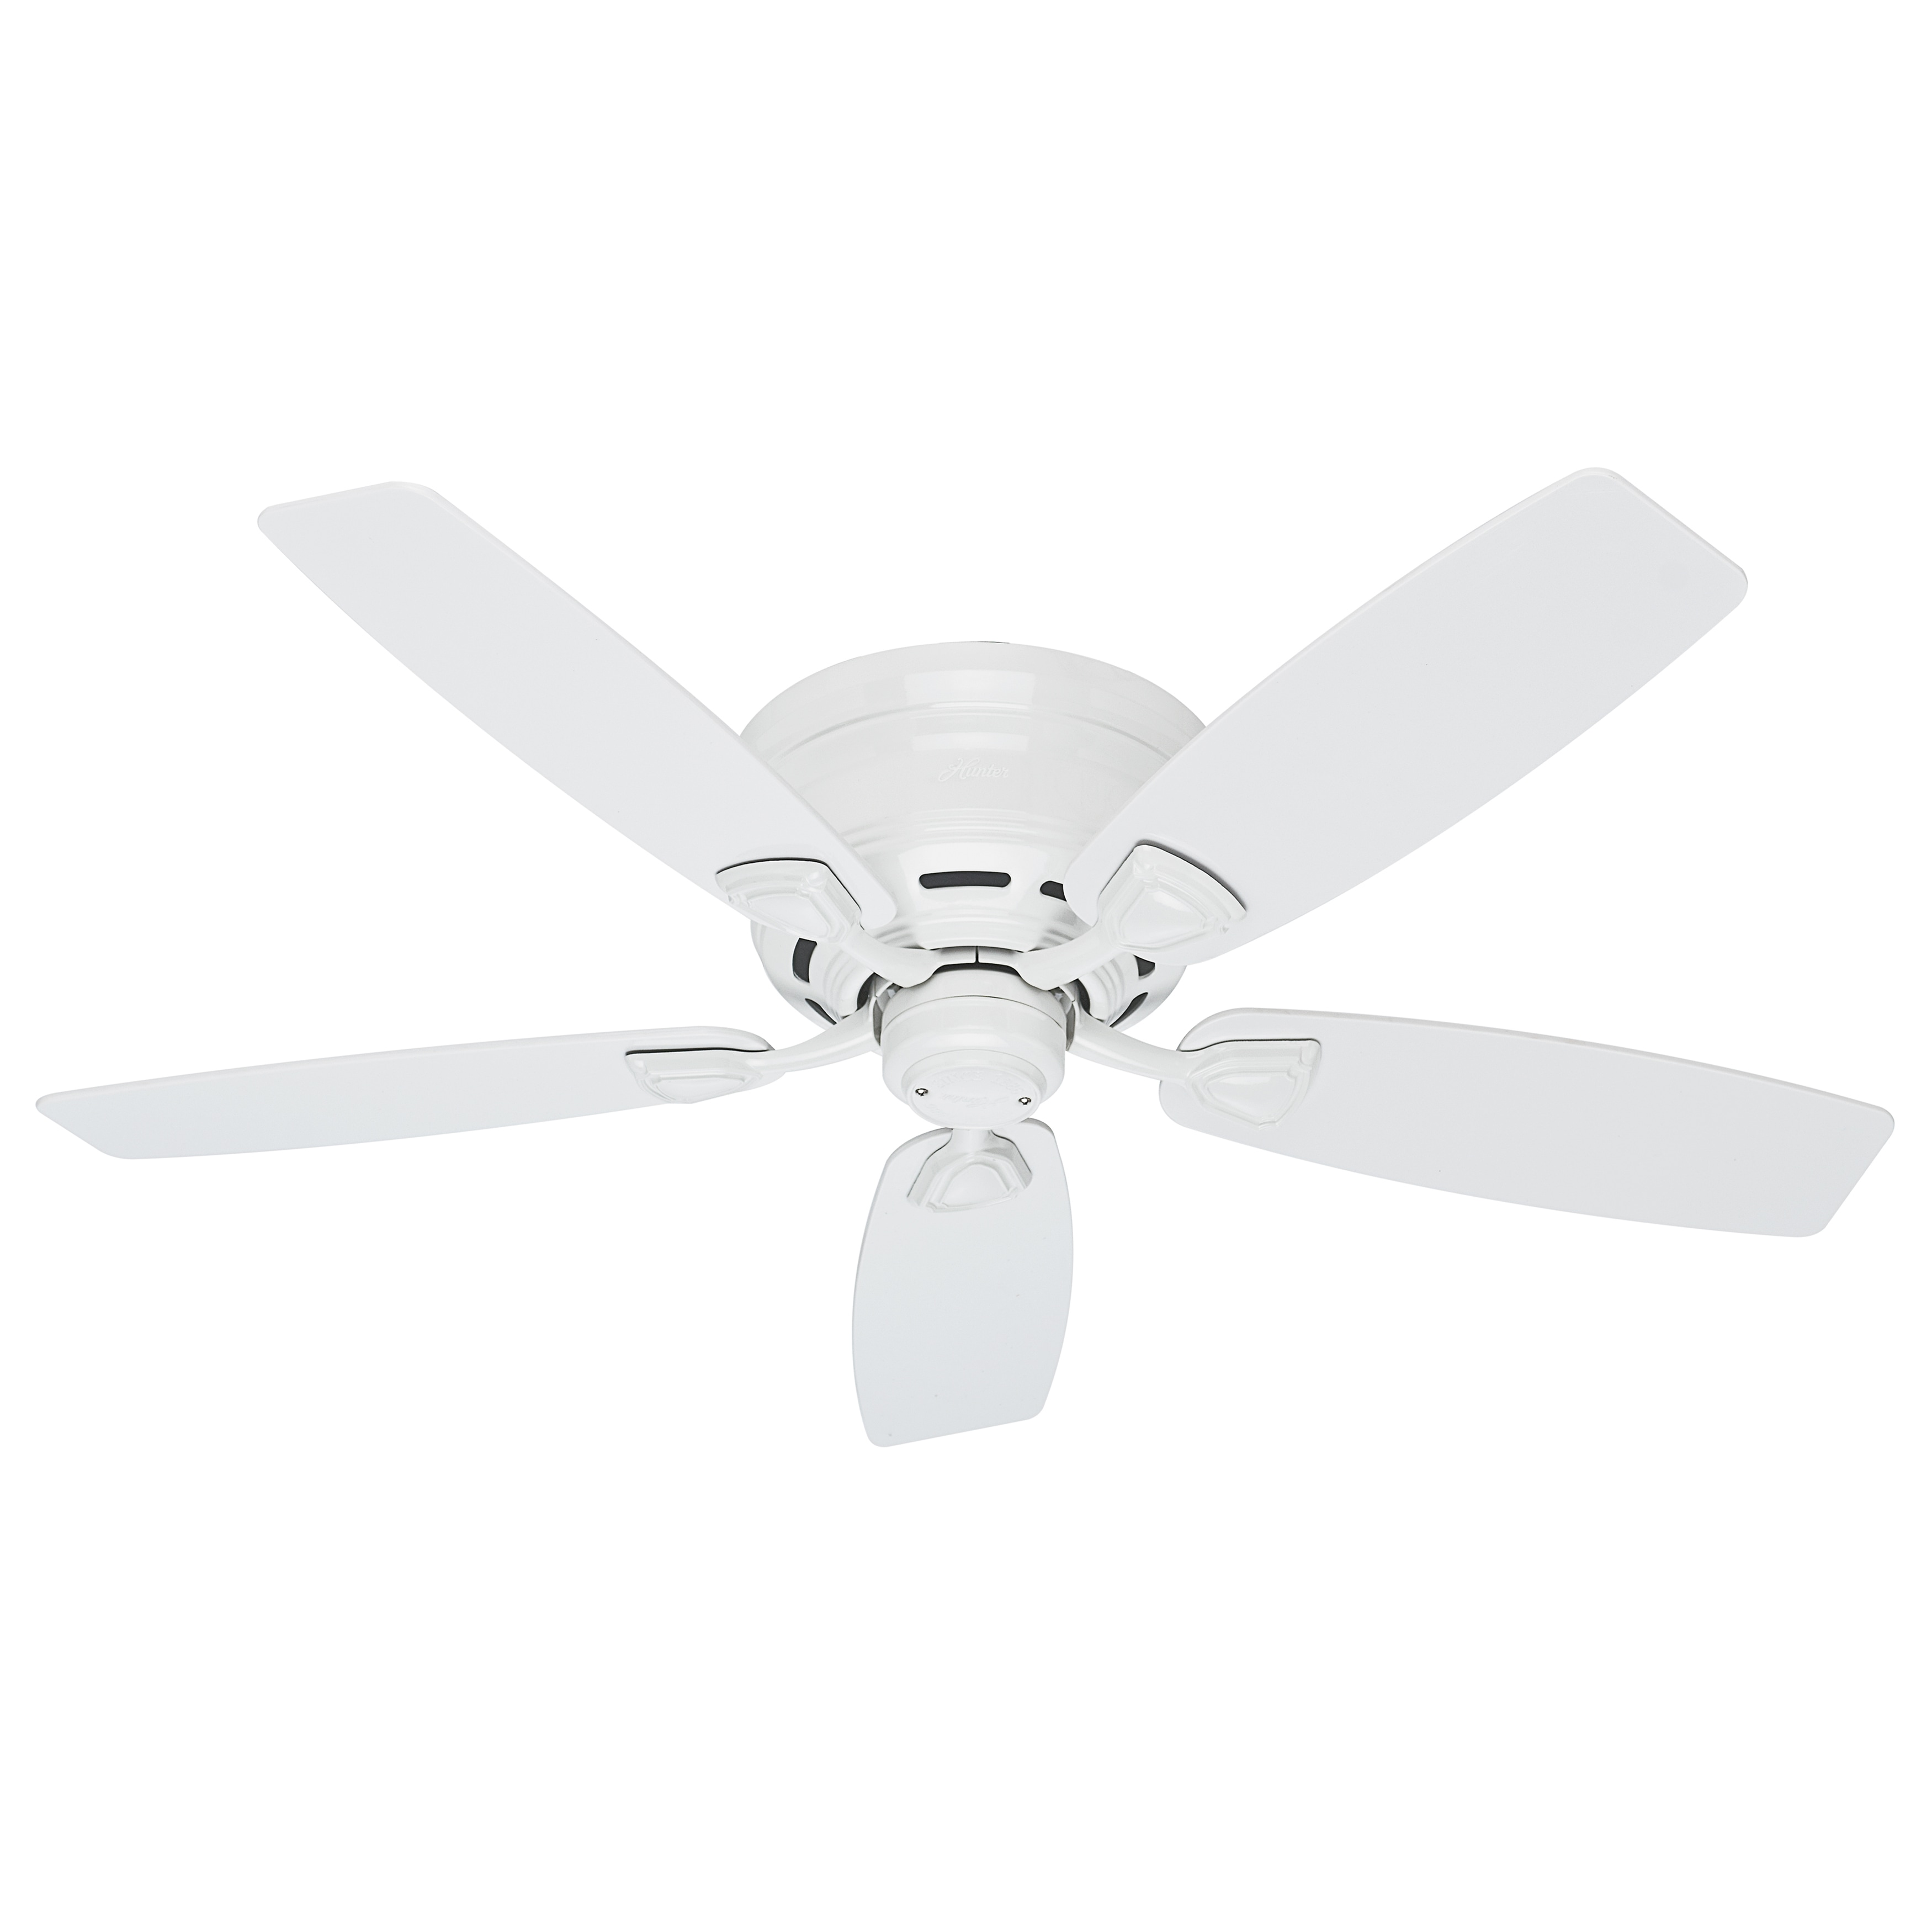 48 inch ceiling fan decorative shop hunter sea wind 48inch etl damp rated white ceiling fan free shipping today overstockcom 9098688